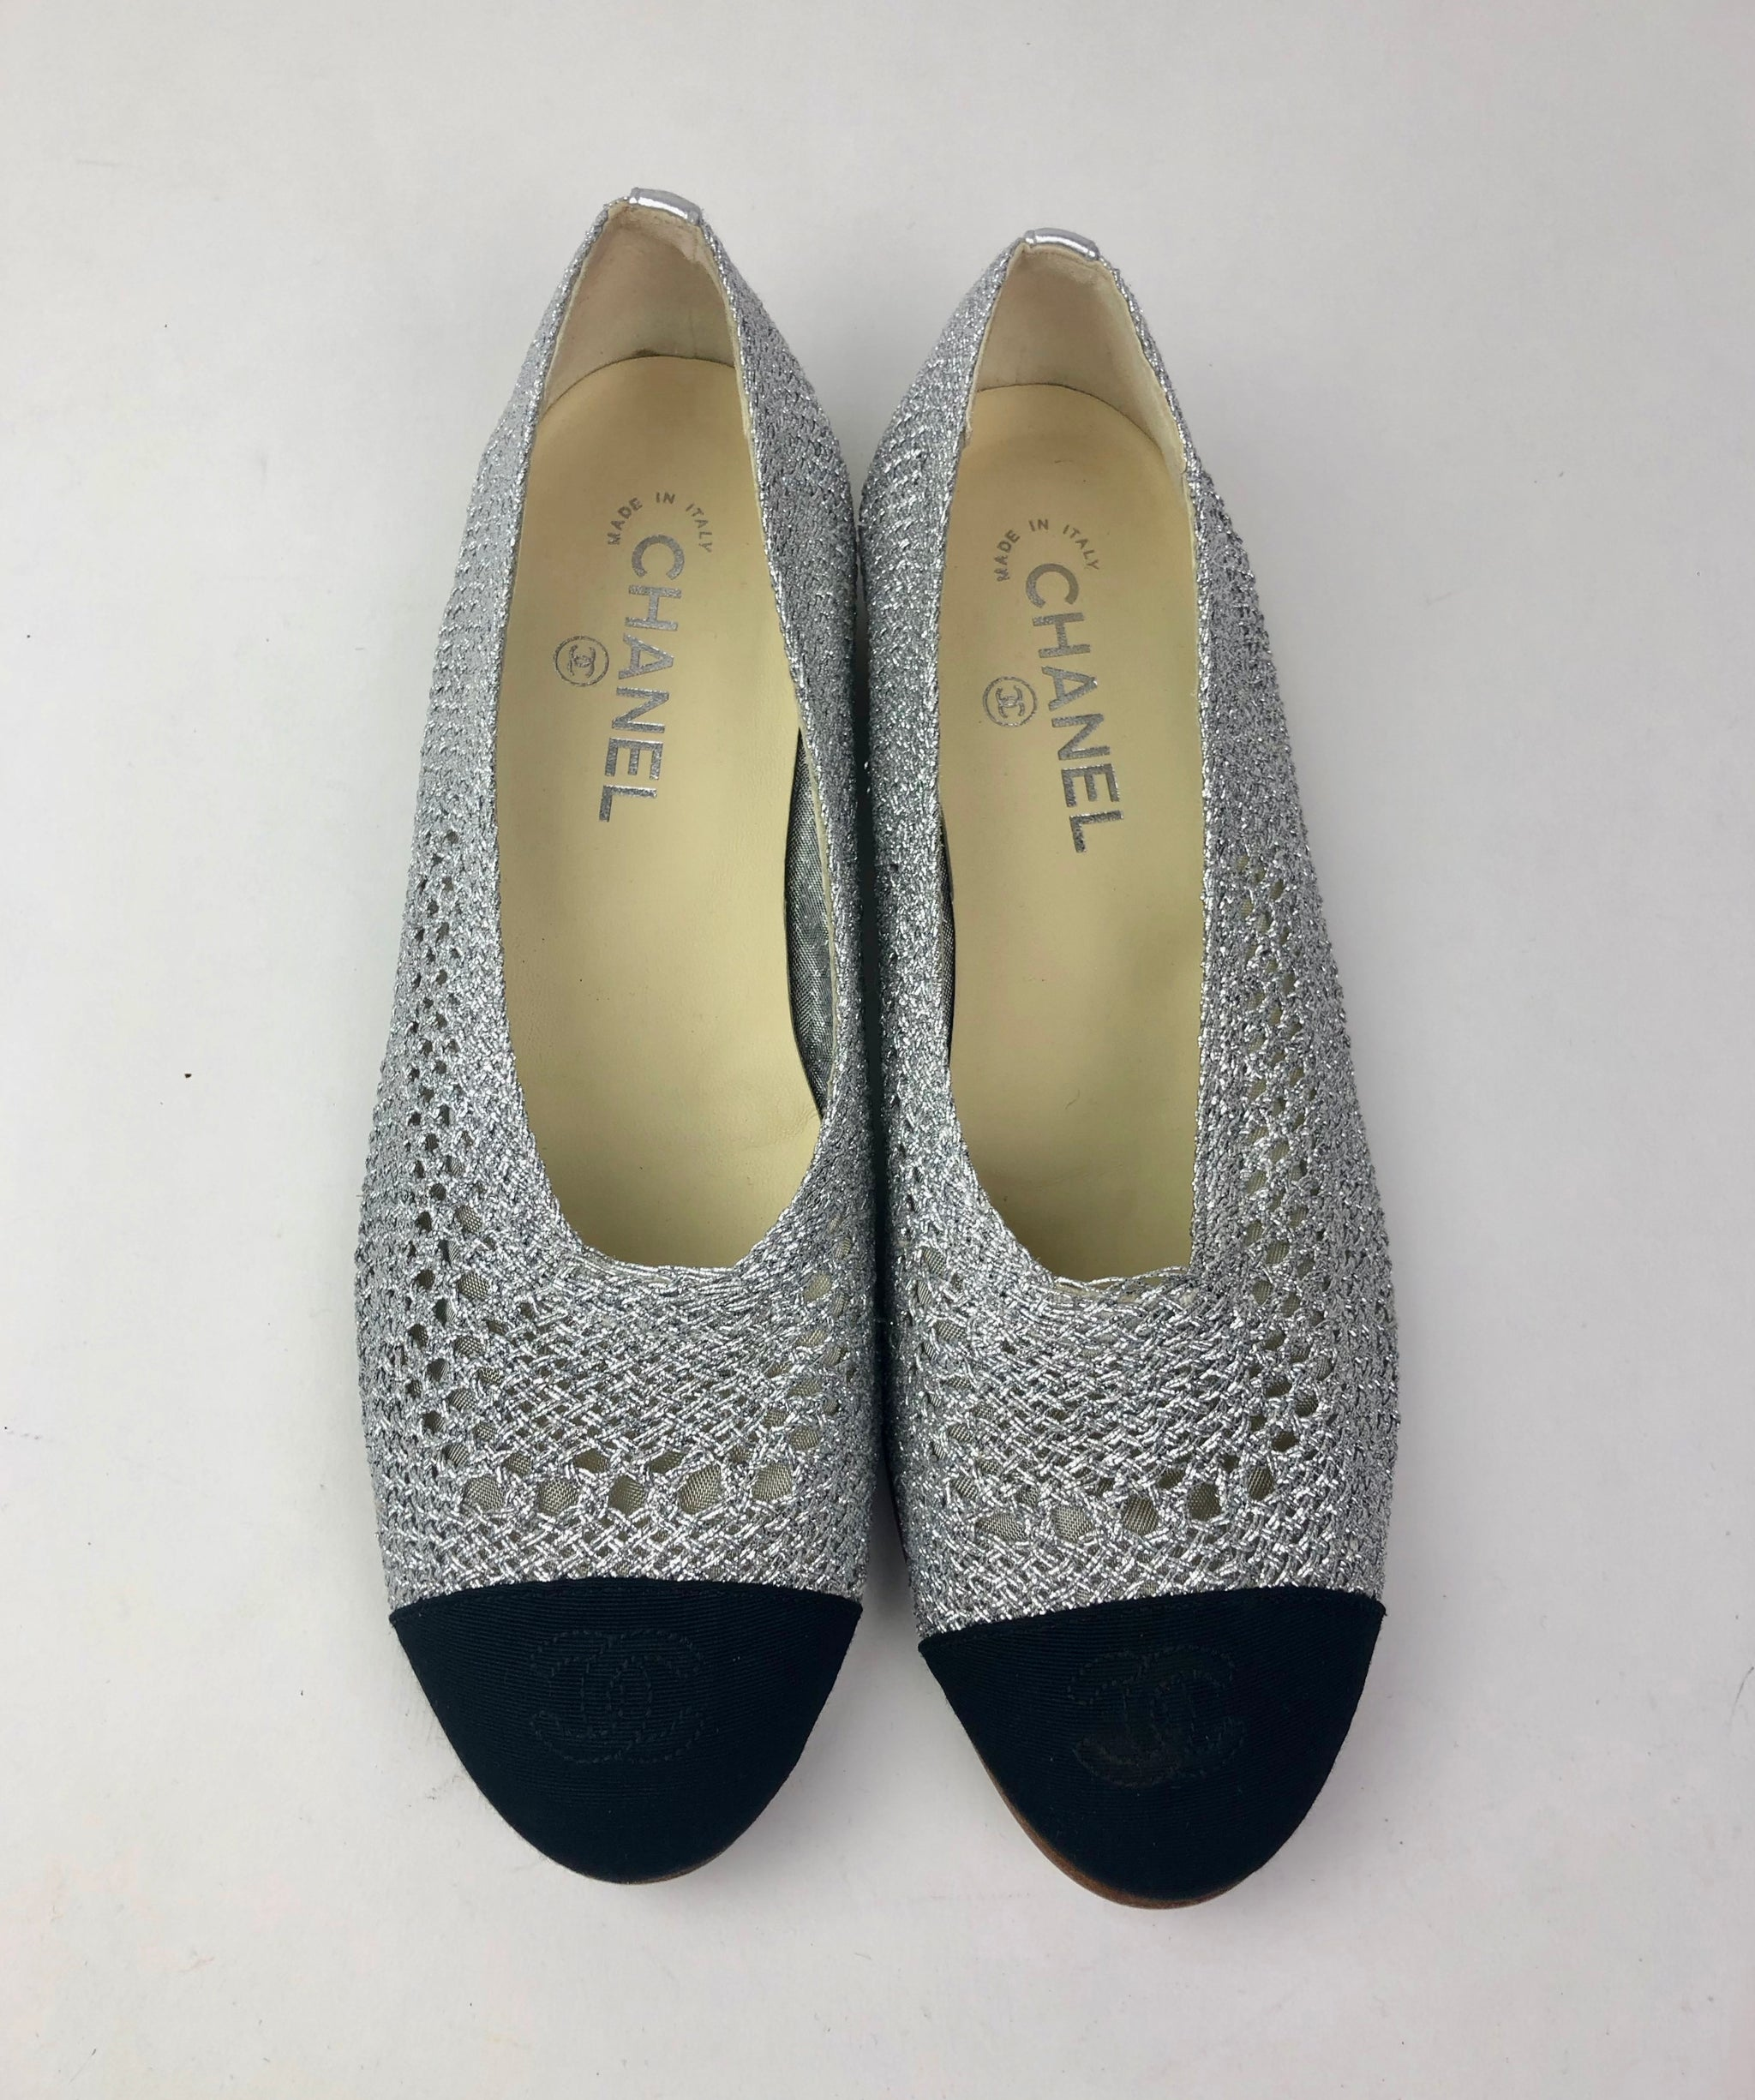 Chanel Ballet Flats 40 - Iconics Preloved Luxury